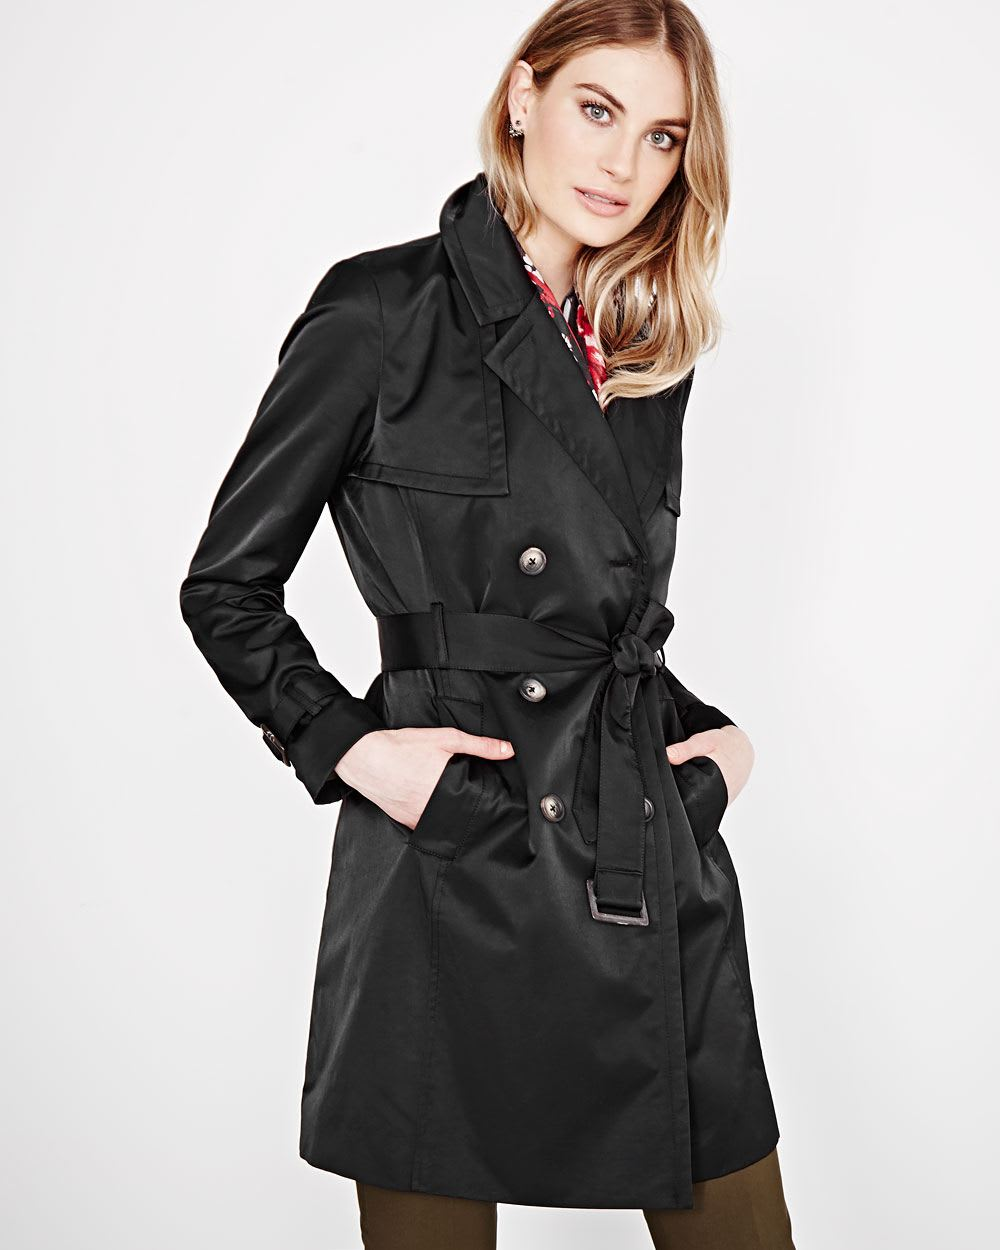 Shop the latest styles of Womens Trenchcoat Coats at Macys. Check out our designer collection of chic coats including peacoats, trench coats, puffer coats and more! Macy's Presents: The Edit- A curated mix of fashion and inspiration Check It Out. Free Shipping with .